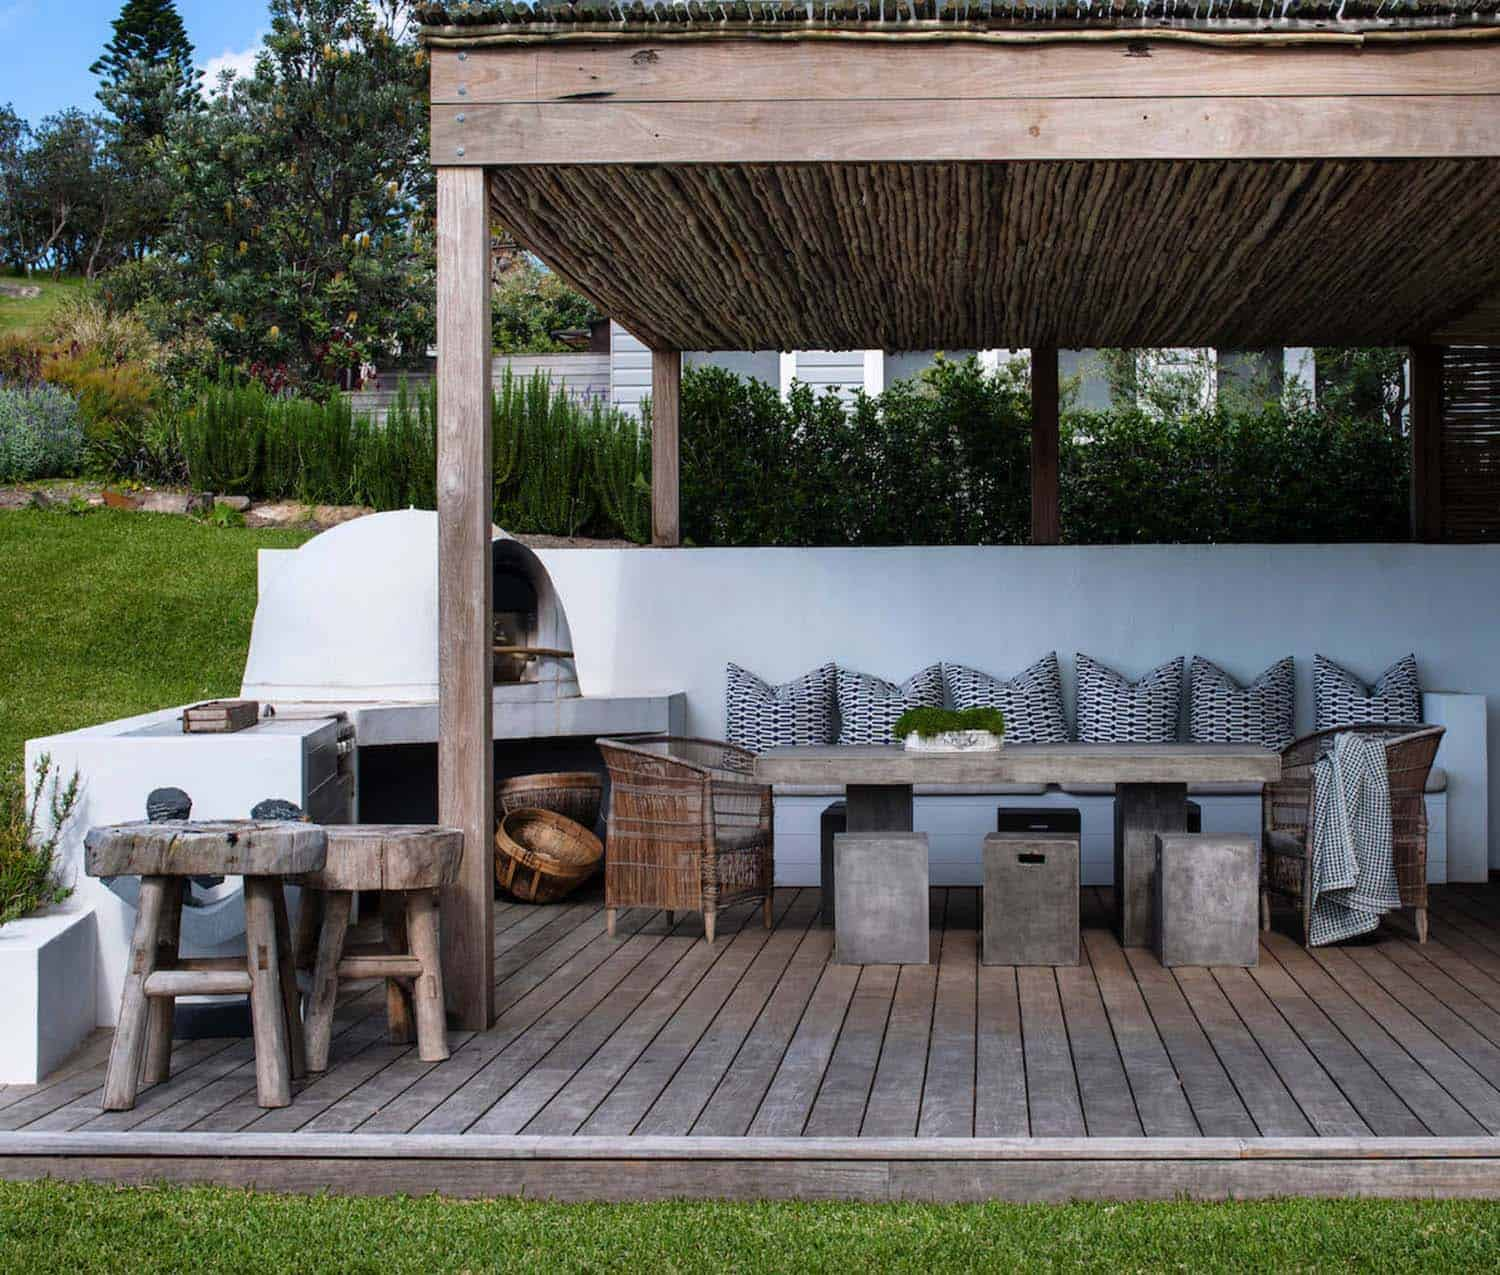 35 Brilliant and inspiring patio ideas for outdoor living ... on Garden Entertainment Area Ideas id=98684